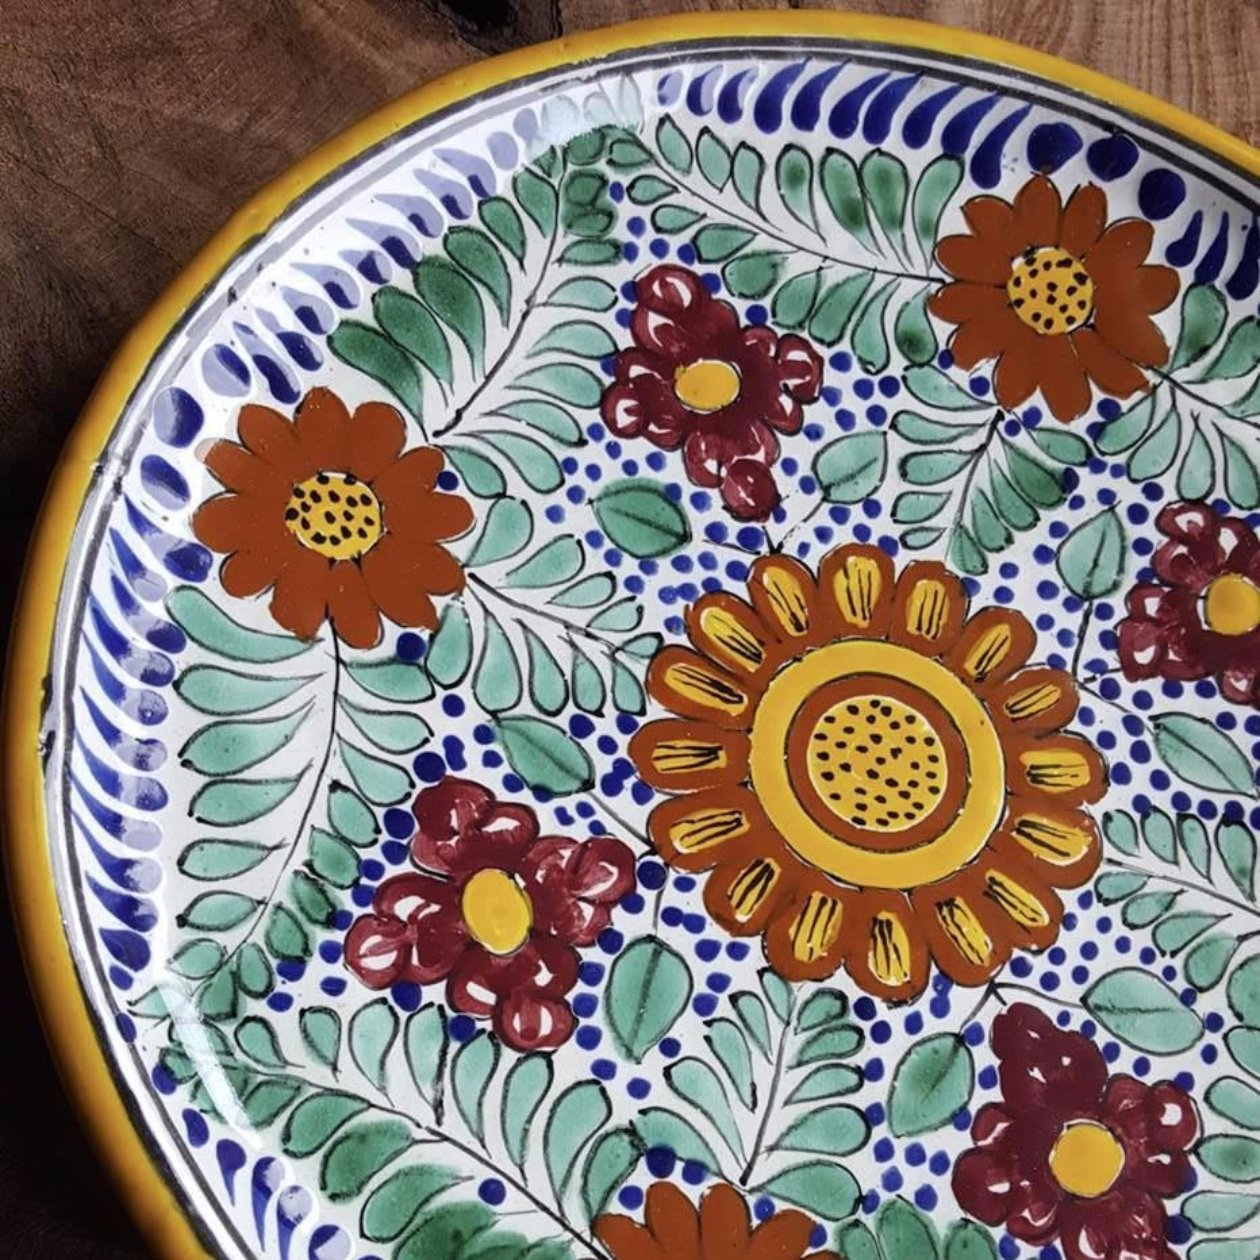 Rustica Gift Amapola Collection Mexican Talavera Pottery Dinner plate detail evocative of Italian Pottery ...  sc 1 st  Rustica Gift \u0026 Talavera Pottery & Amapola Mexican Talavera Pottery Dinner Plate | Rustica Gift